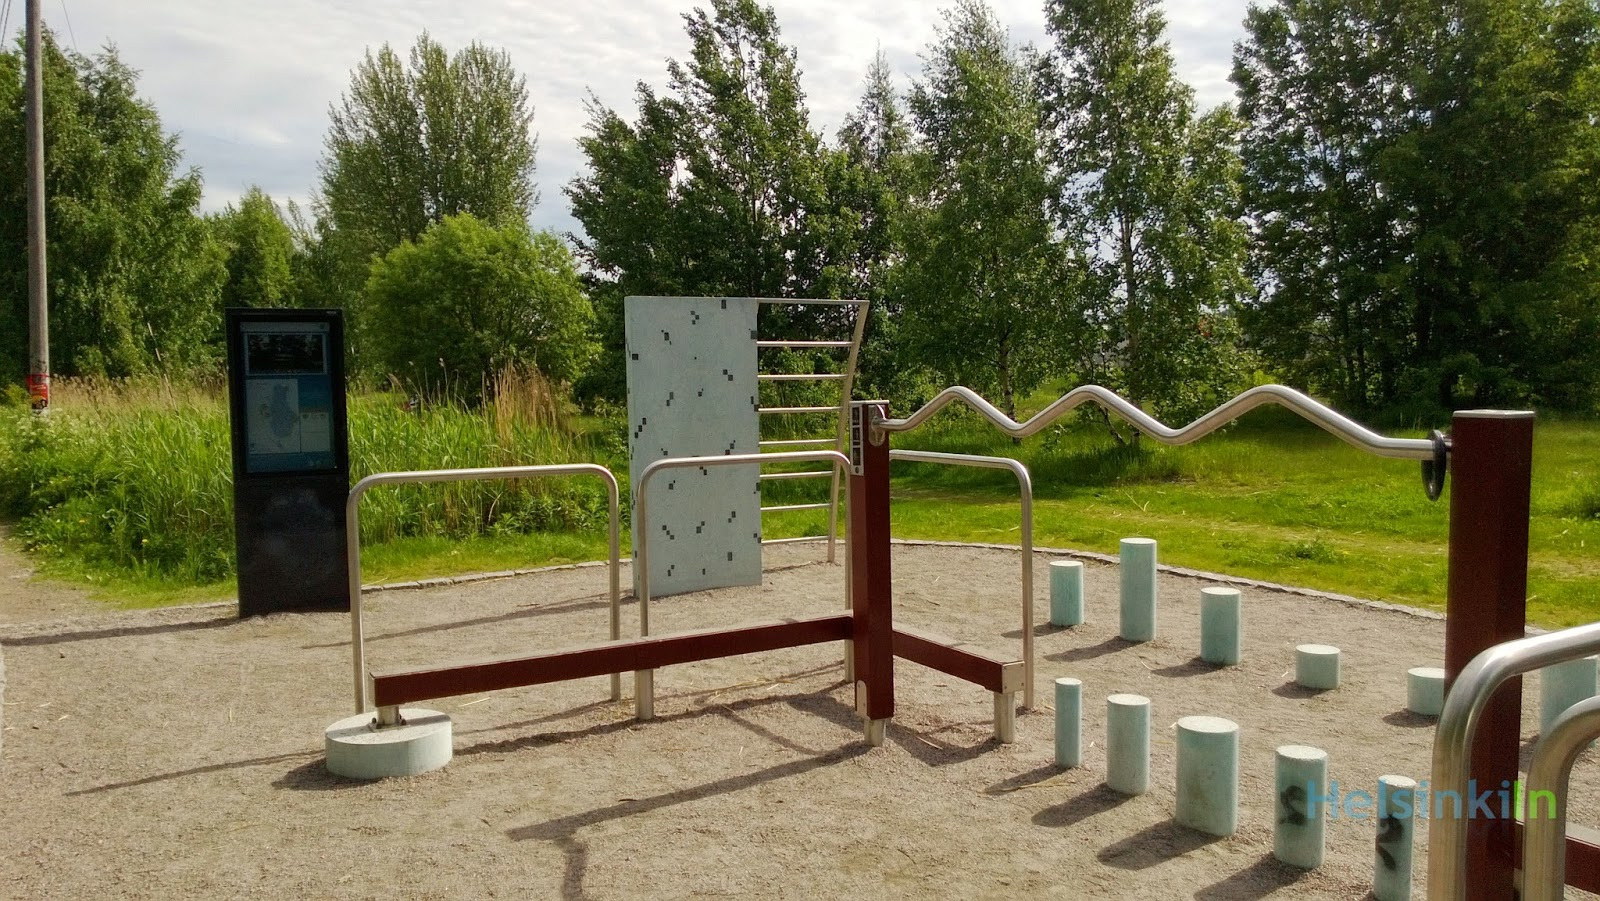 free outdoor gym in Helsinki